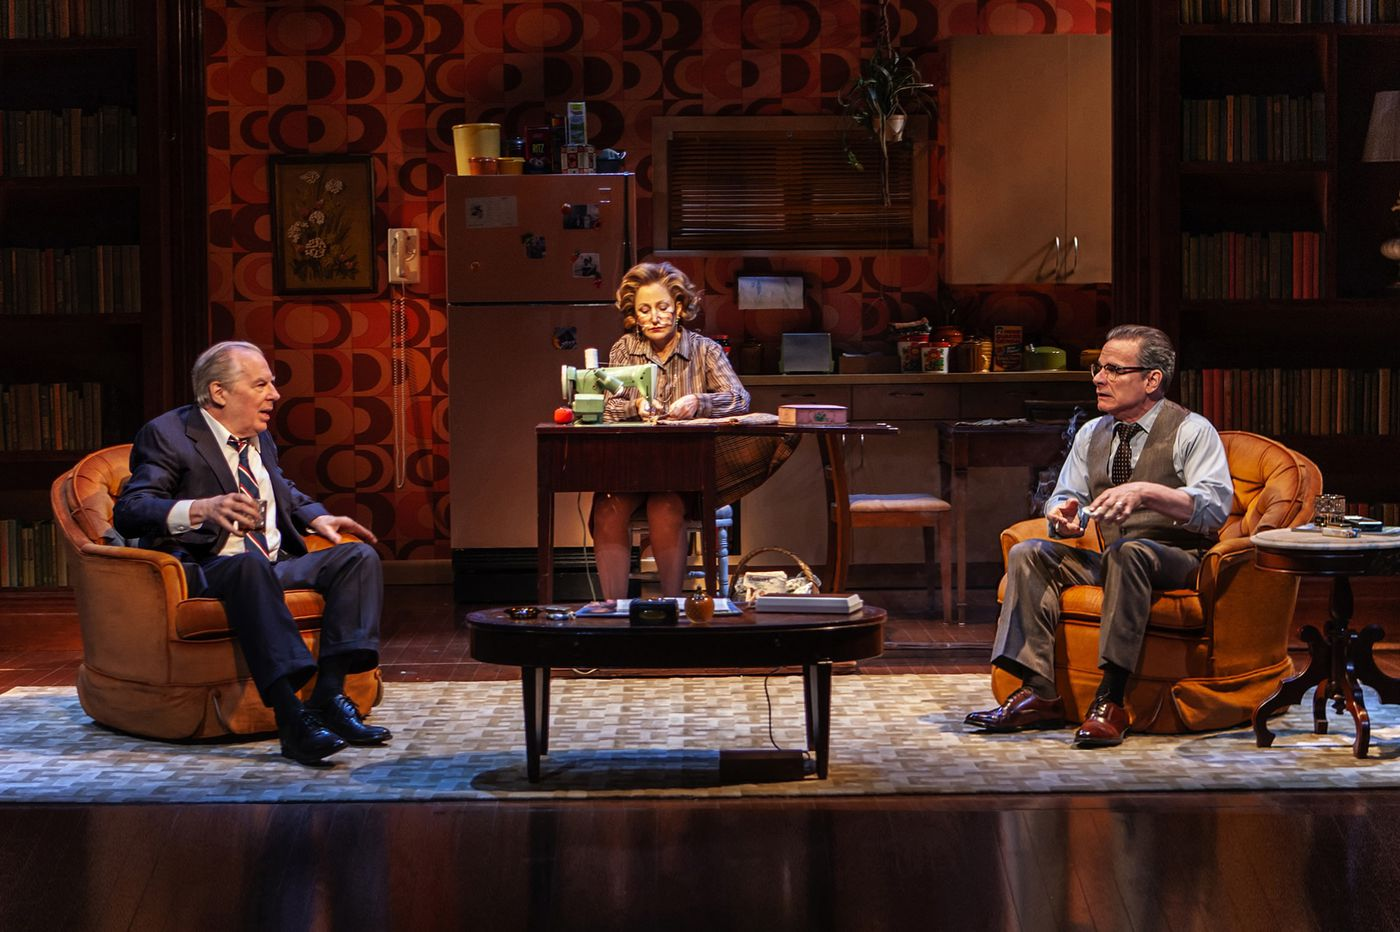 'The True' at Pershing Square Signature Theatre: Muddled history, fine acting